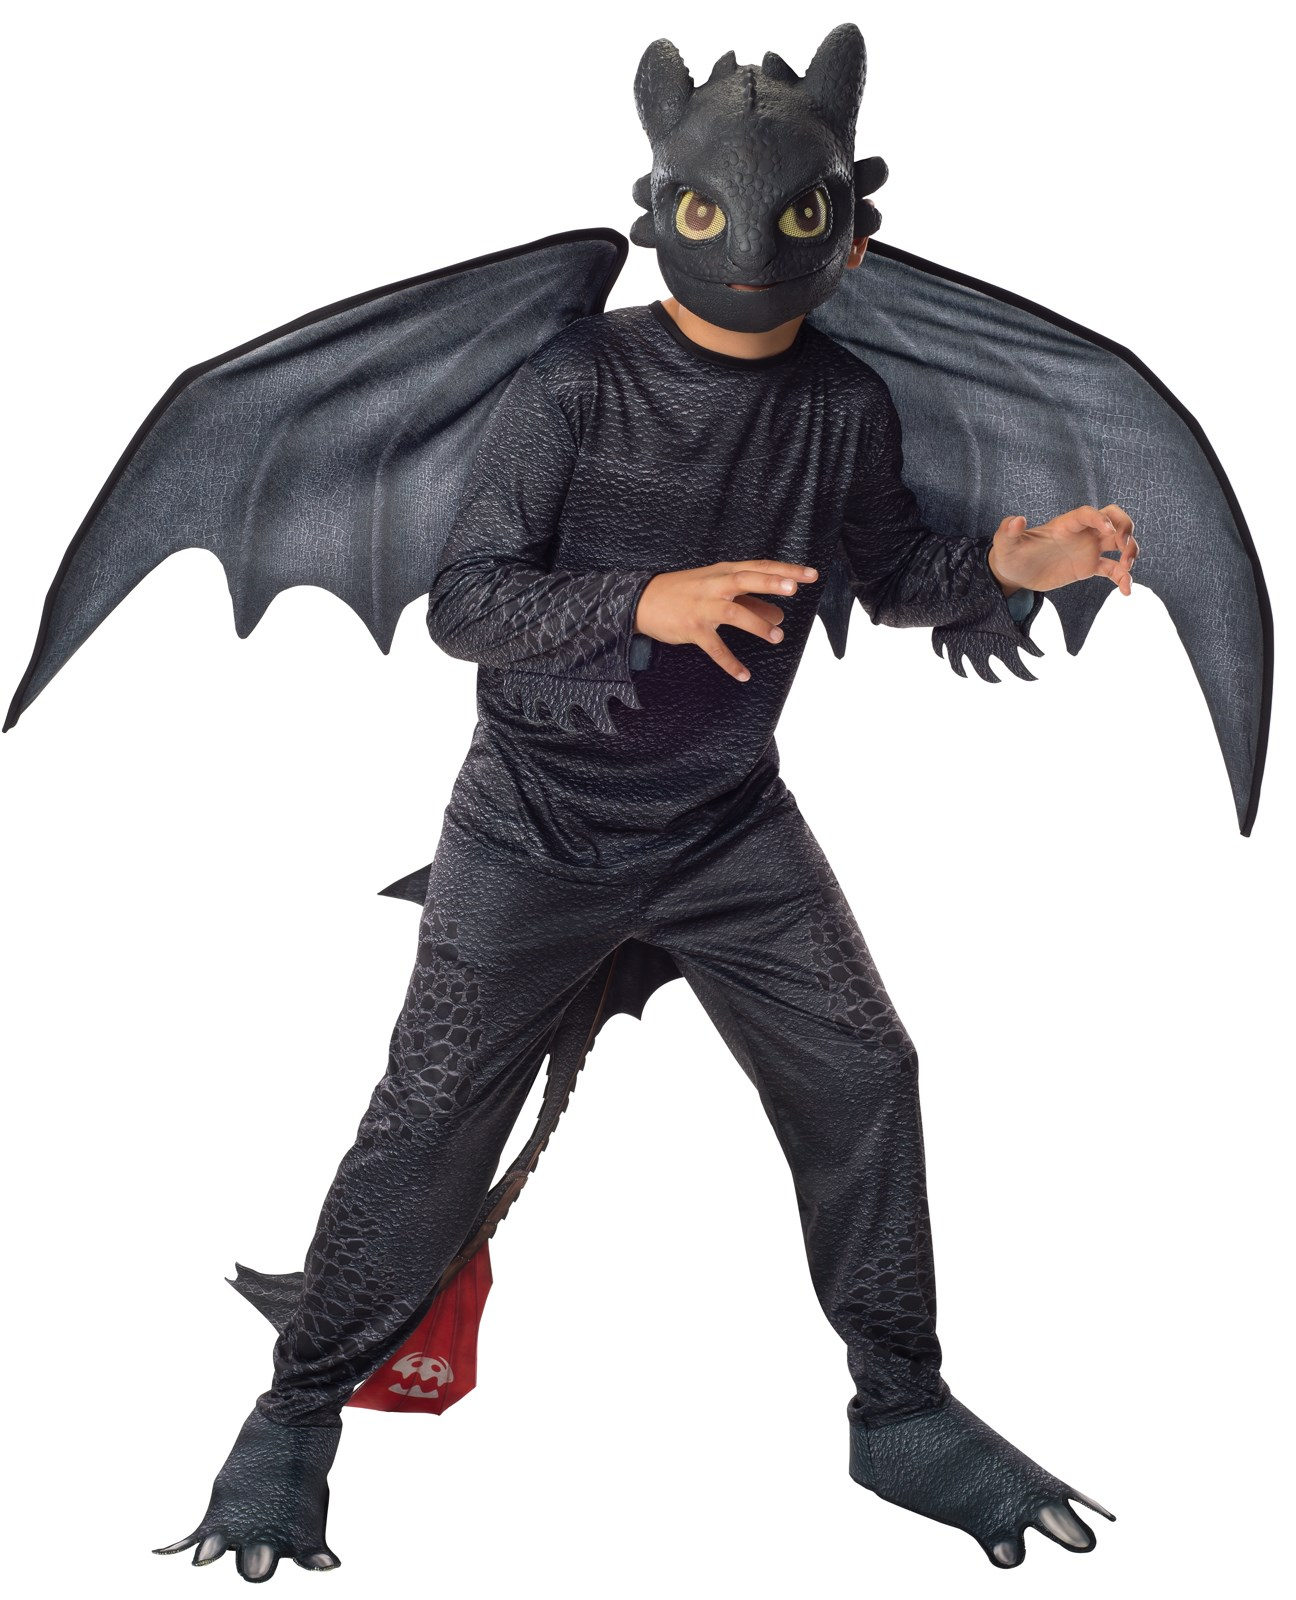 How to Train Your Dragon 2 - Night Fury Toothless Kids Costume